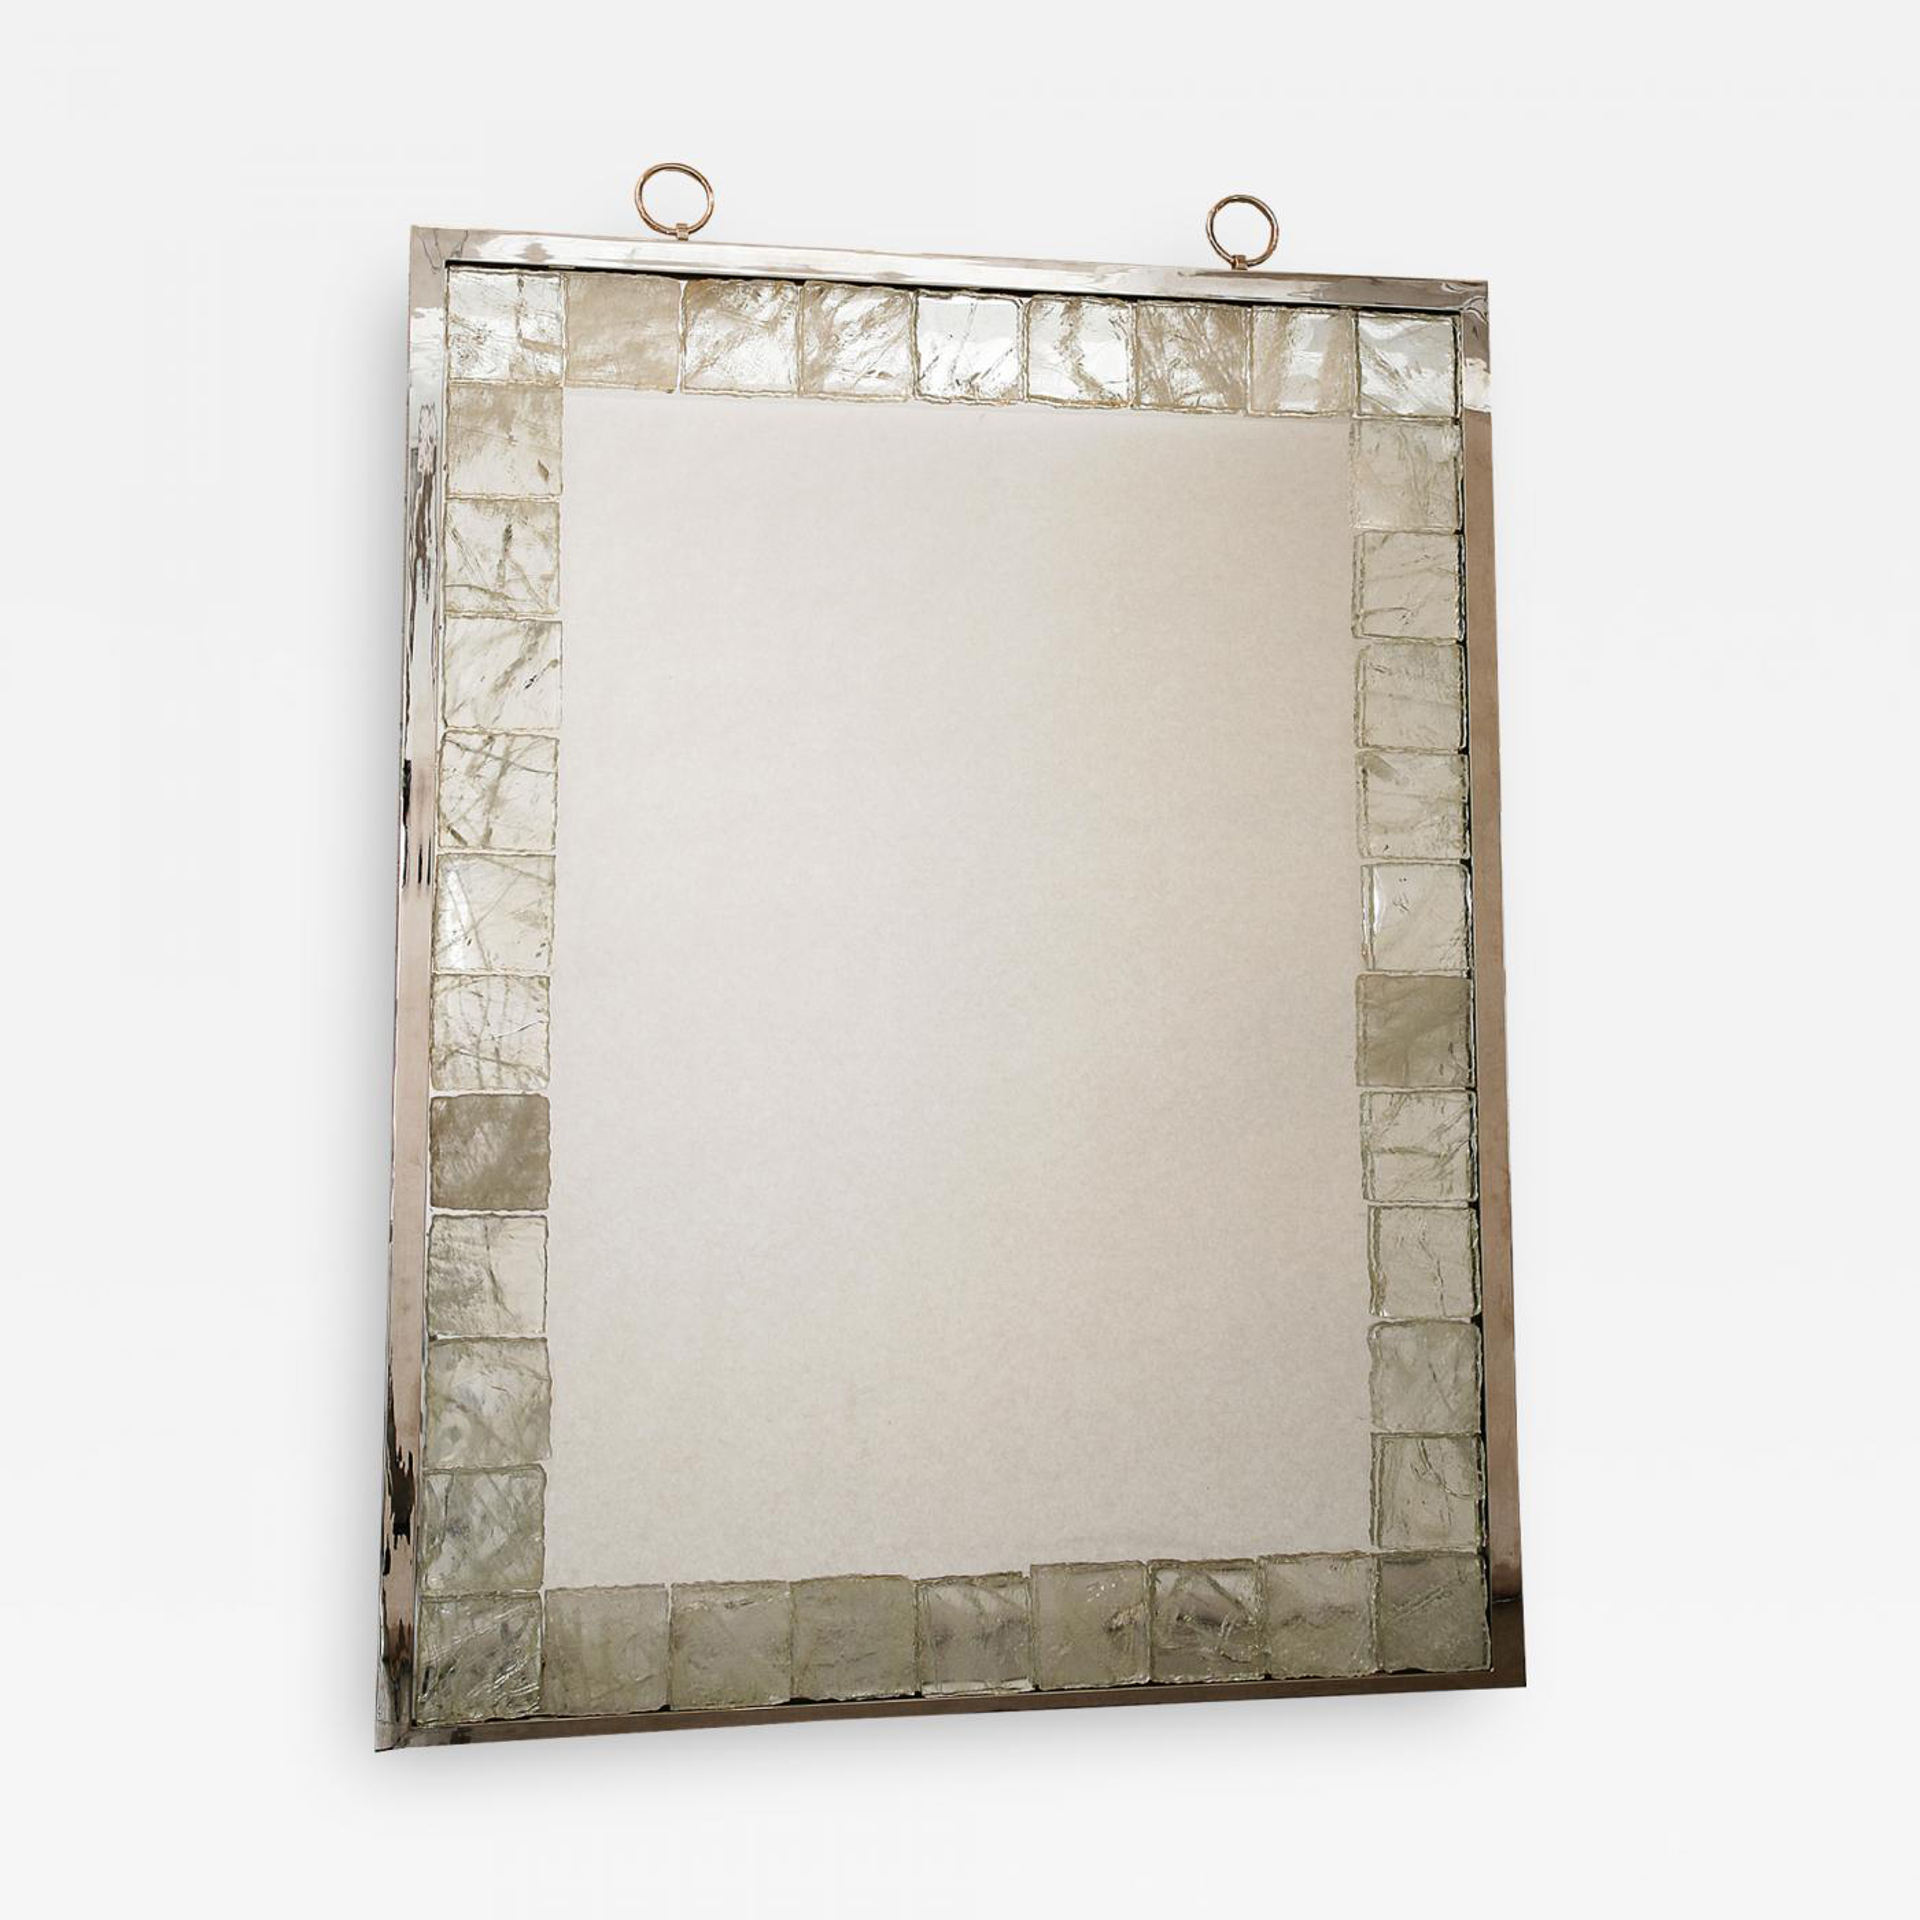 Mirror with rock crystal tiles by Andre Hayat